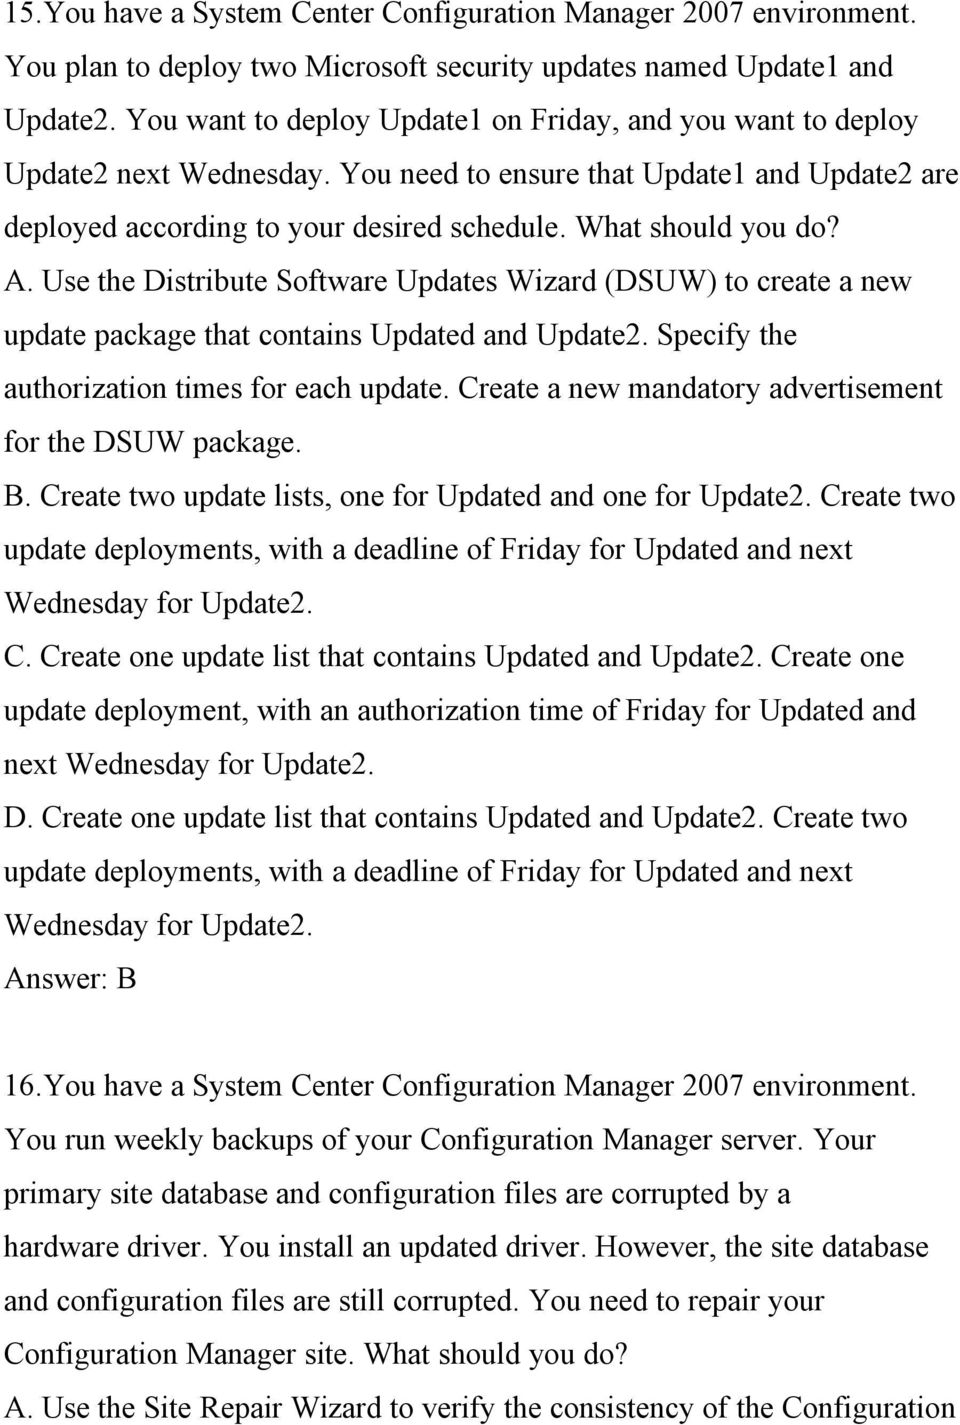 Use the Distribute Software Updates Wizard (DSUW) to create a new update package that contains Updated and Update2. Specify the authorization times for each update.